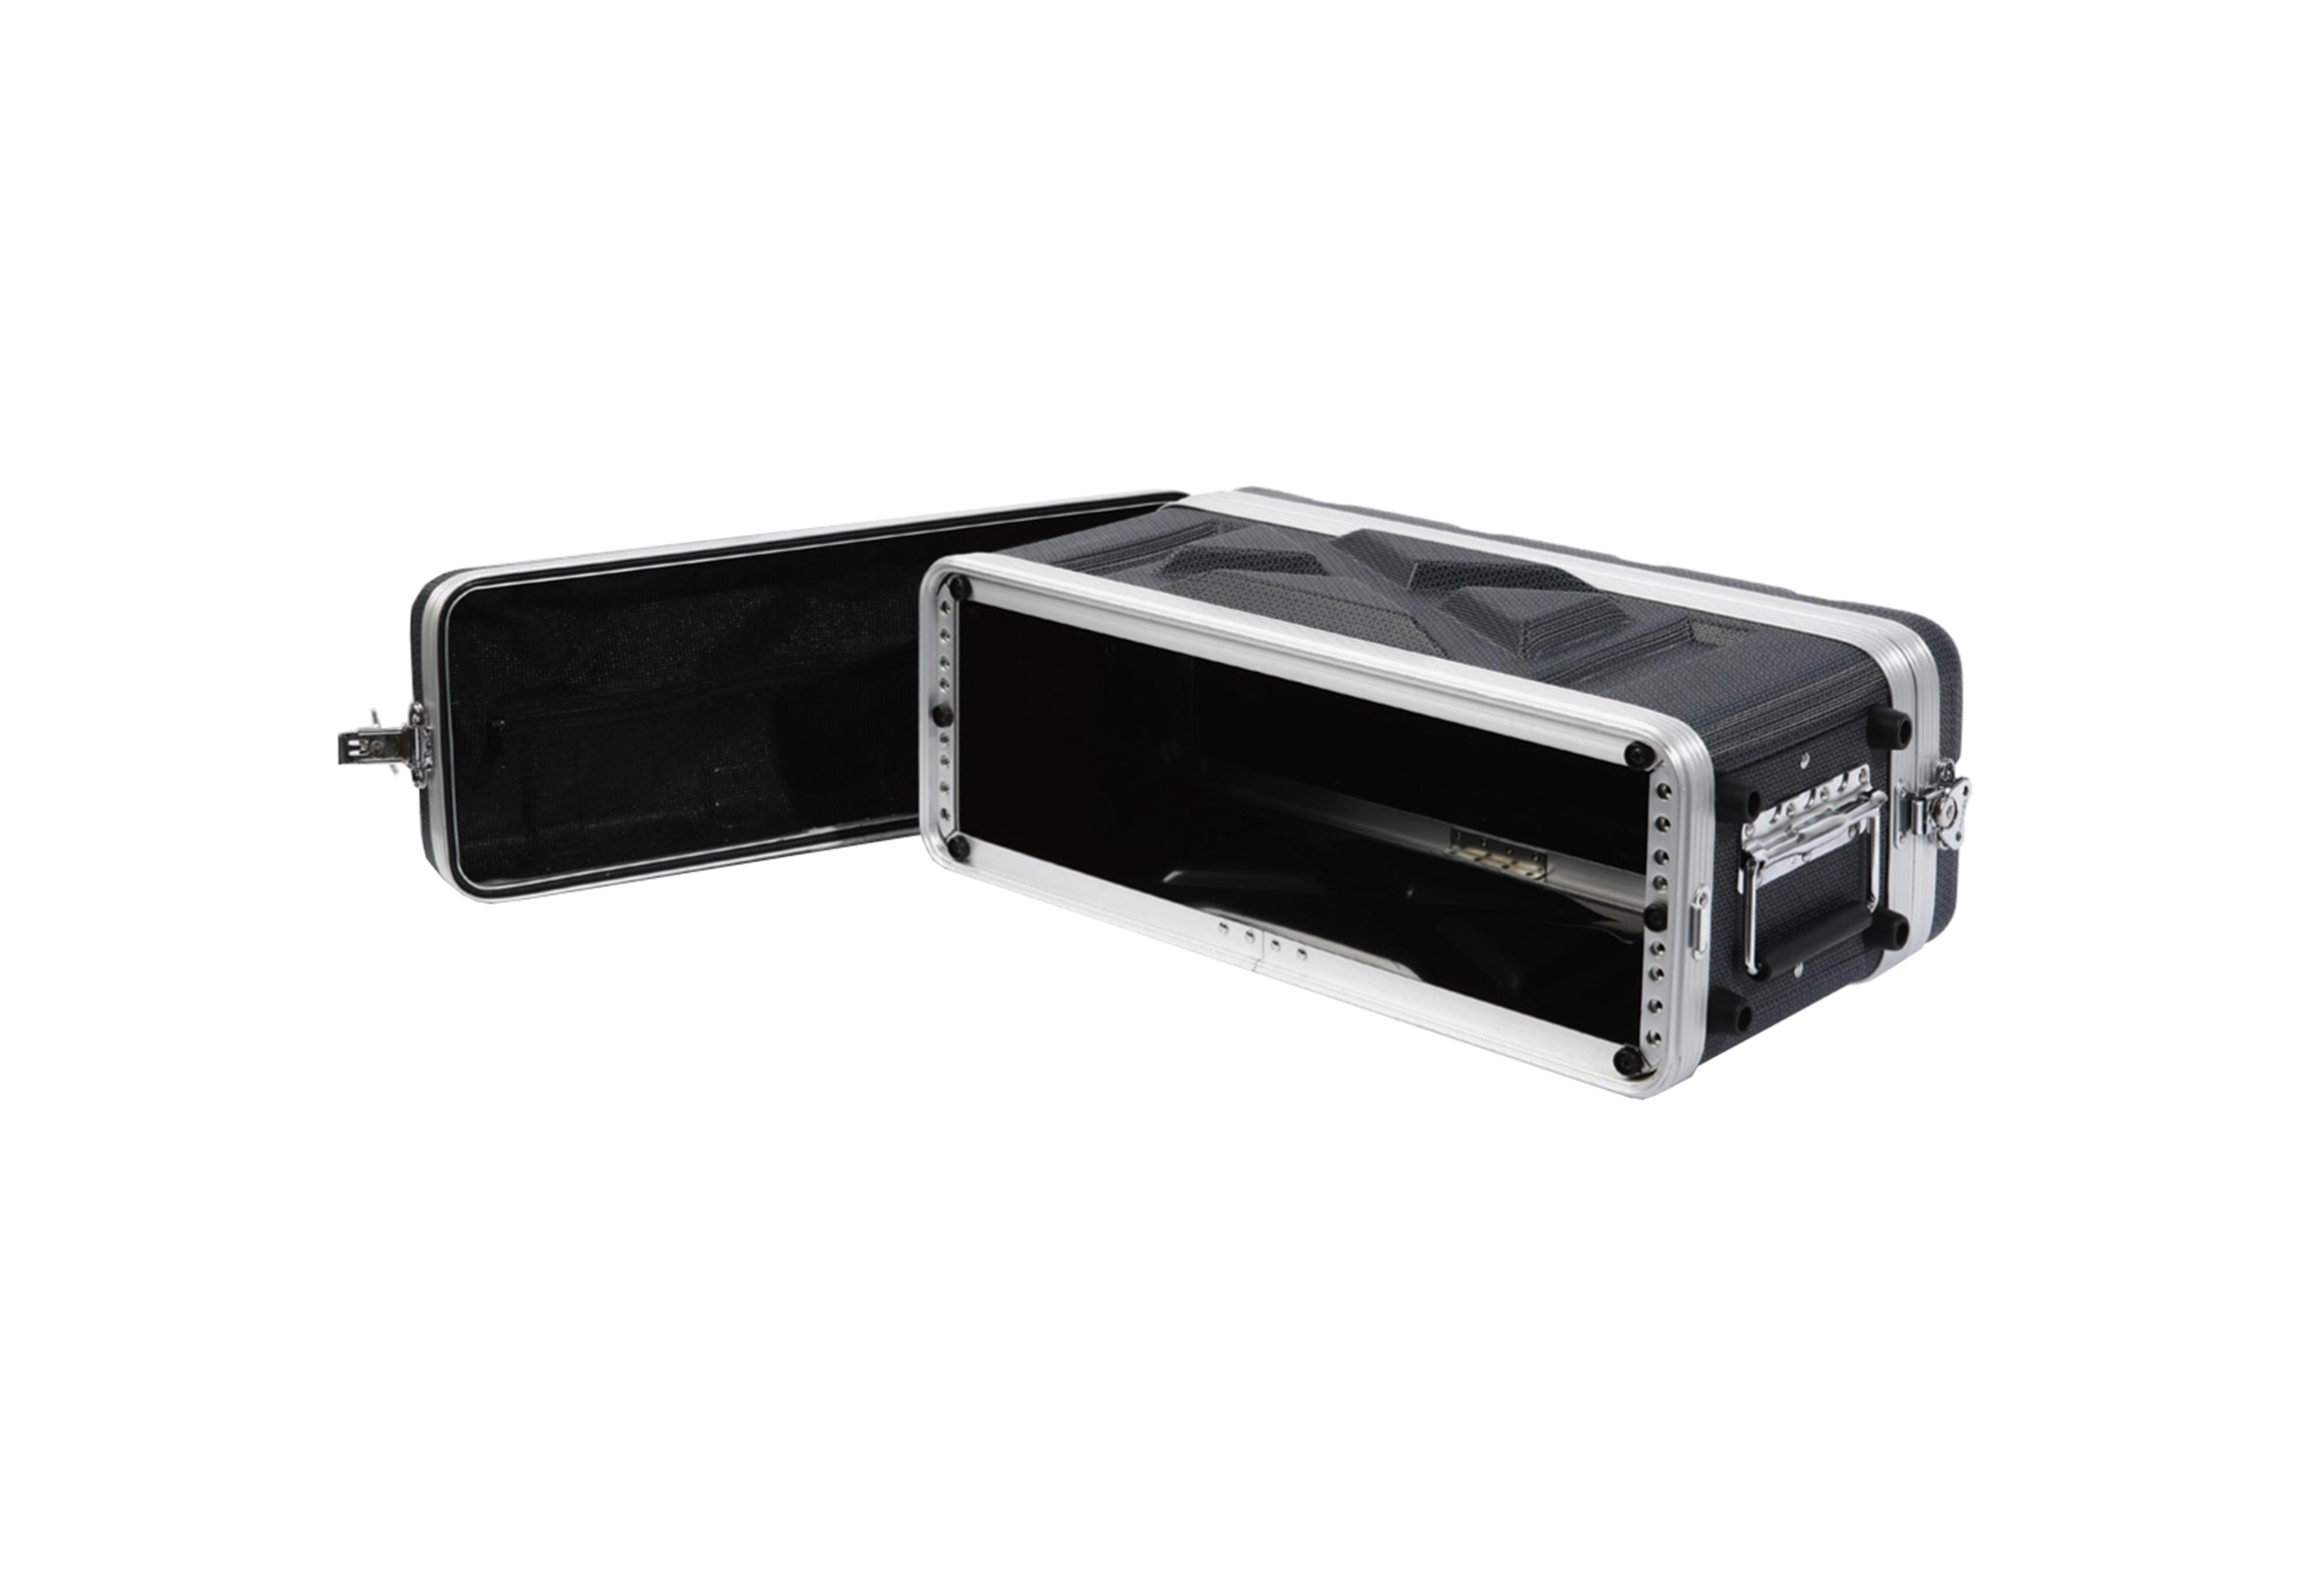 PROEL FORCE FOABSR3US RACK FLIGHT CASE CORTO IN ABS - Dj Equipment Accessori - Borse e Custodie DJ